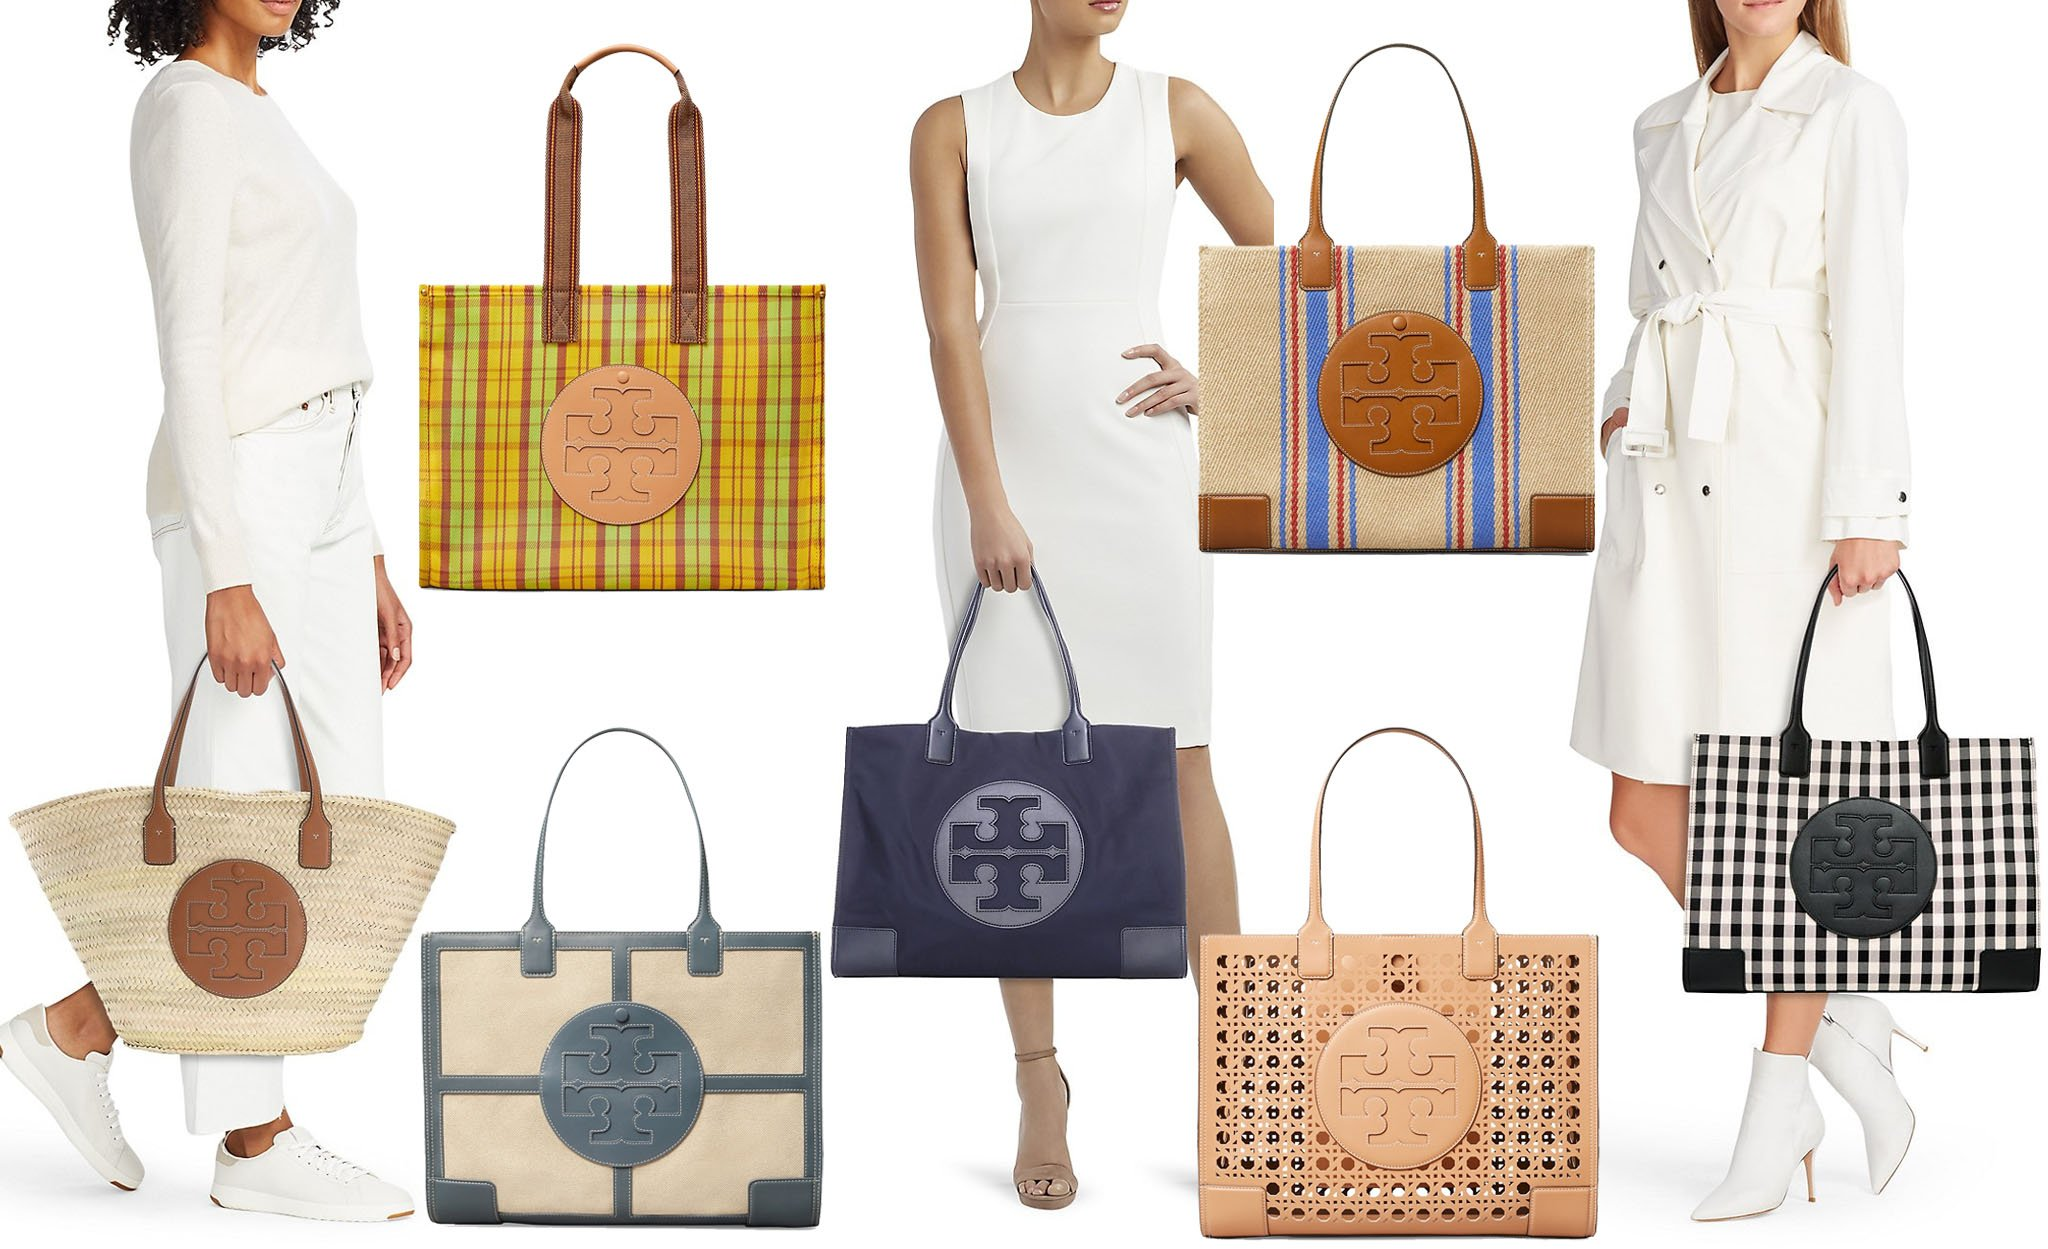 The Ella bag comes in a variety of silhouettes but is easily identified by the large T-logo medallion on the center front